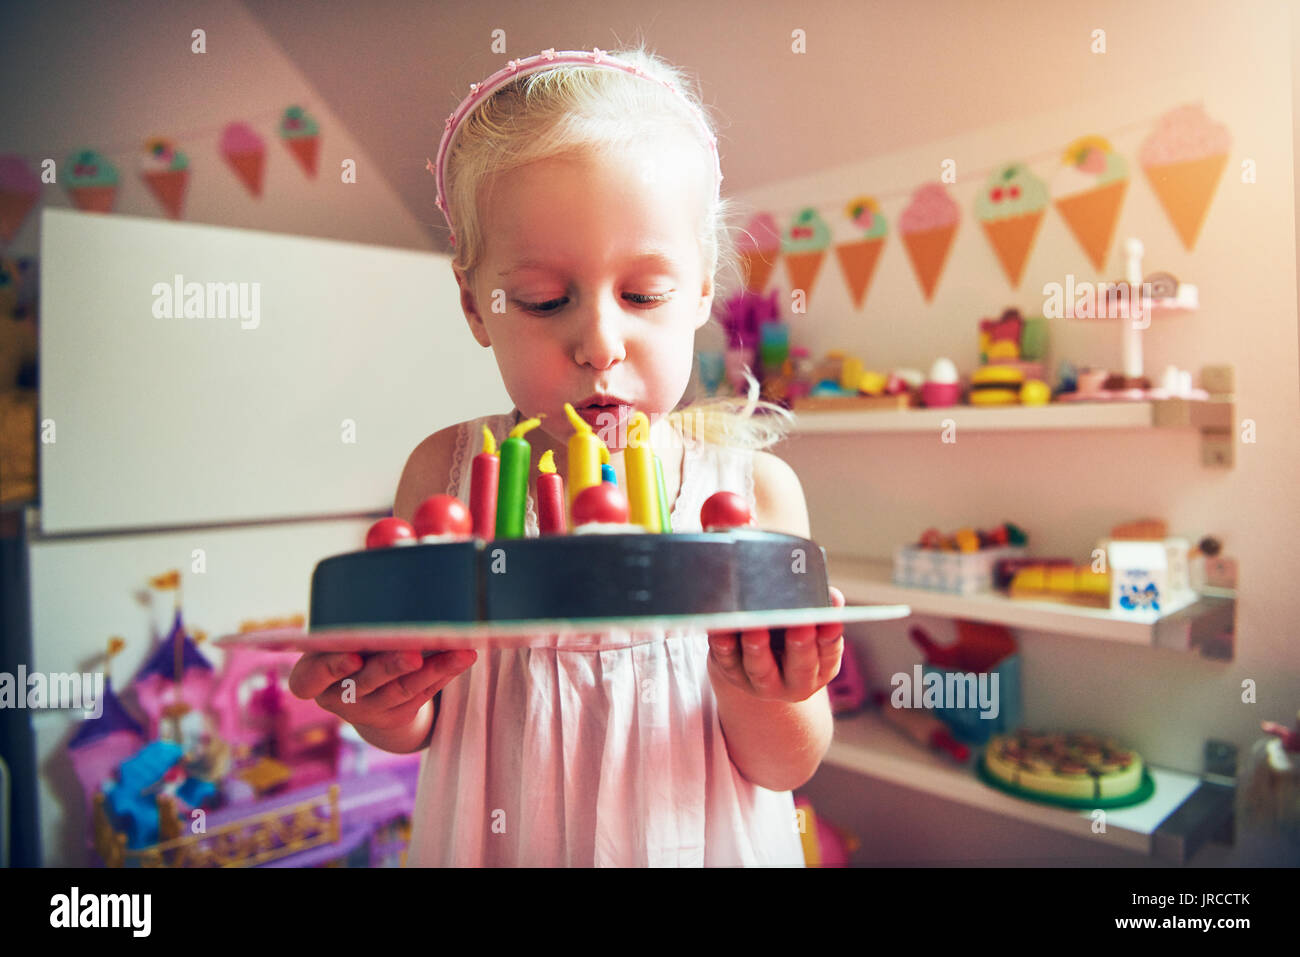 Little Girl Blowing To Candles Placed On Toy Cake Horizontal Indoors Shot